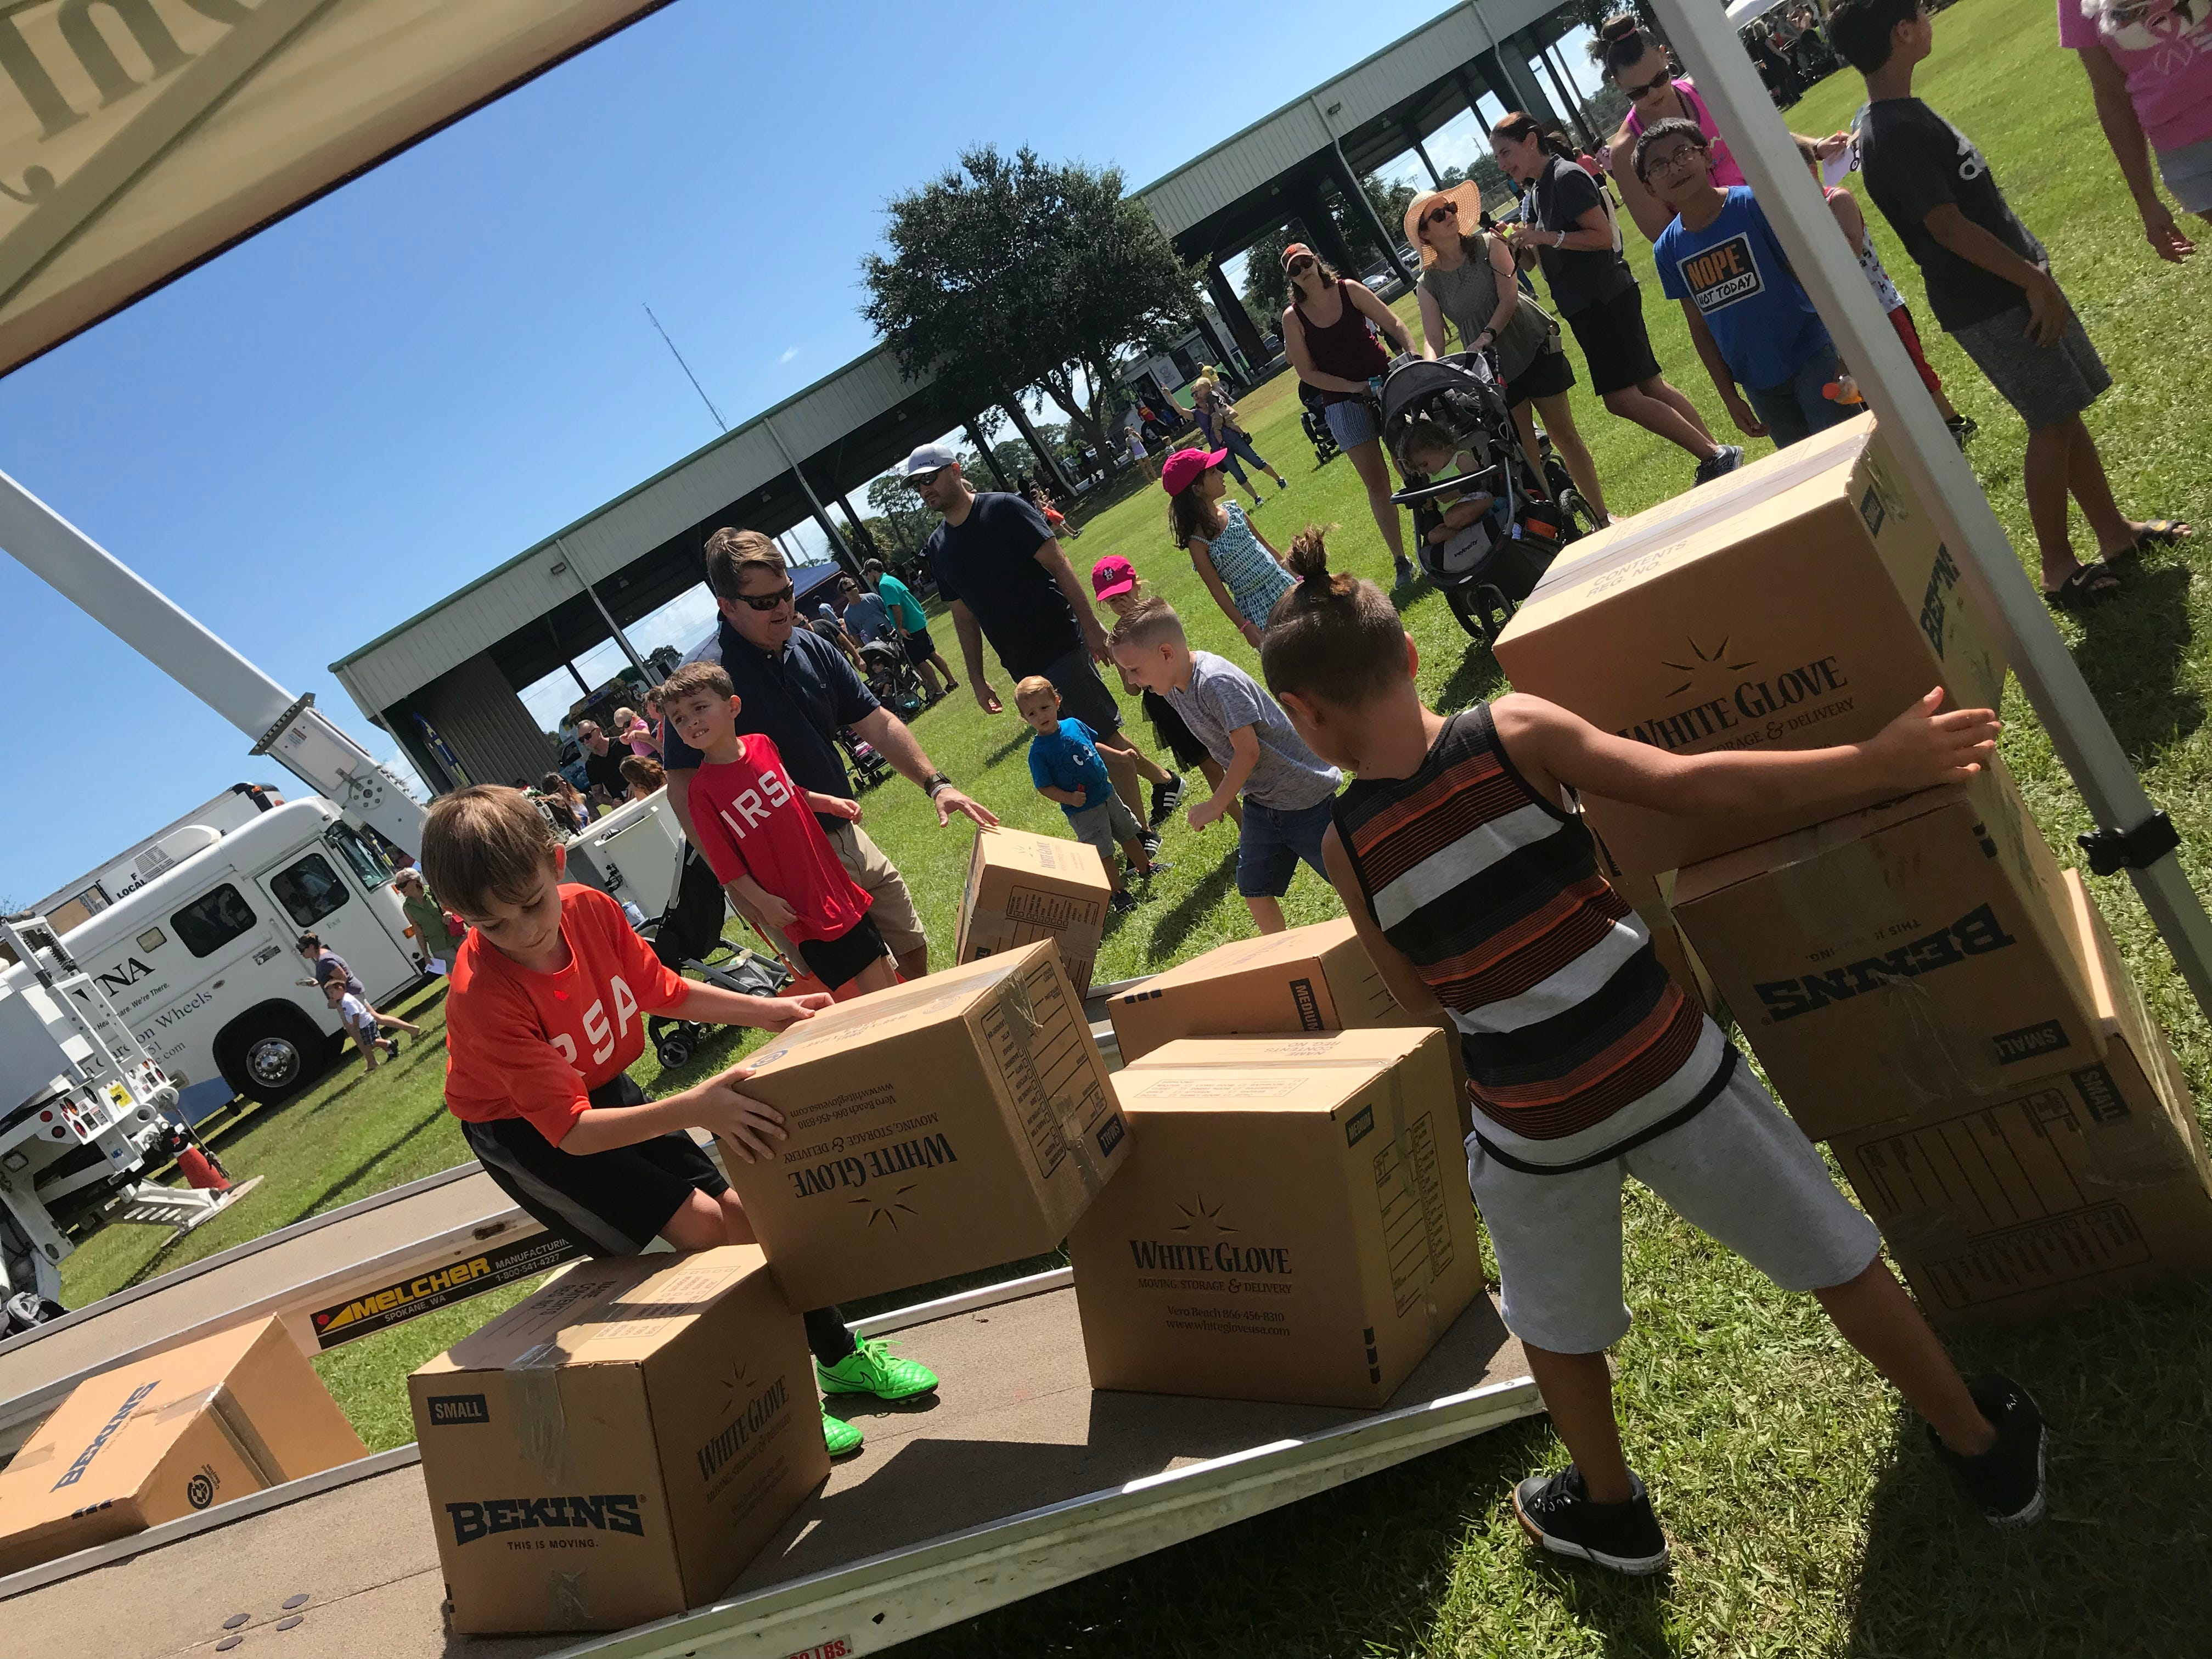 Children help haul boxes from the the boxes at White Glove Moving truck.